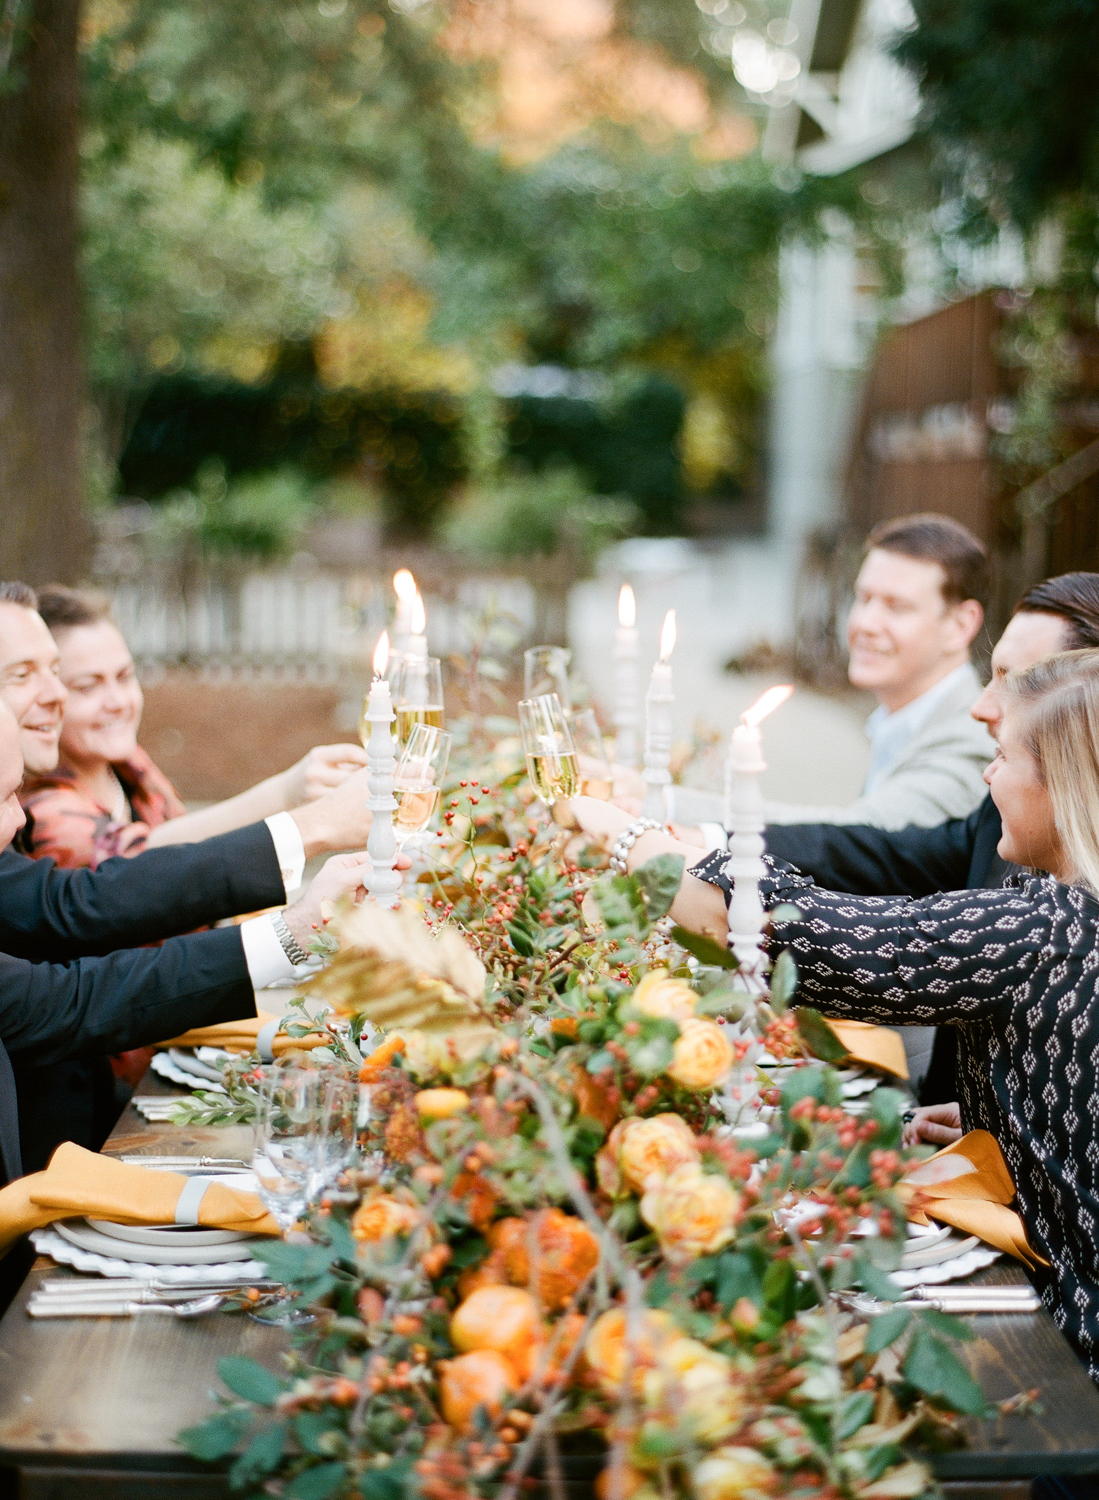 The wedding party toasts champagne during the wedding reception, over a floral table runner foraged by florist Max Gill; Sylvie Gil Photography